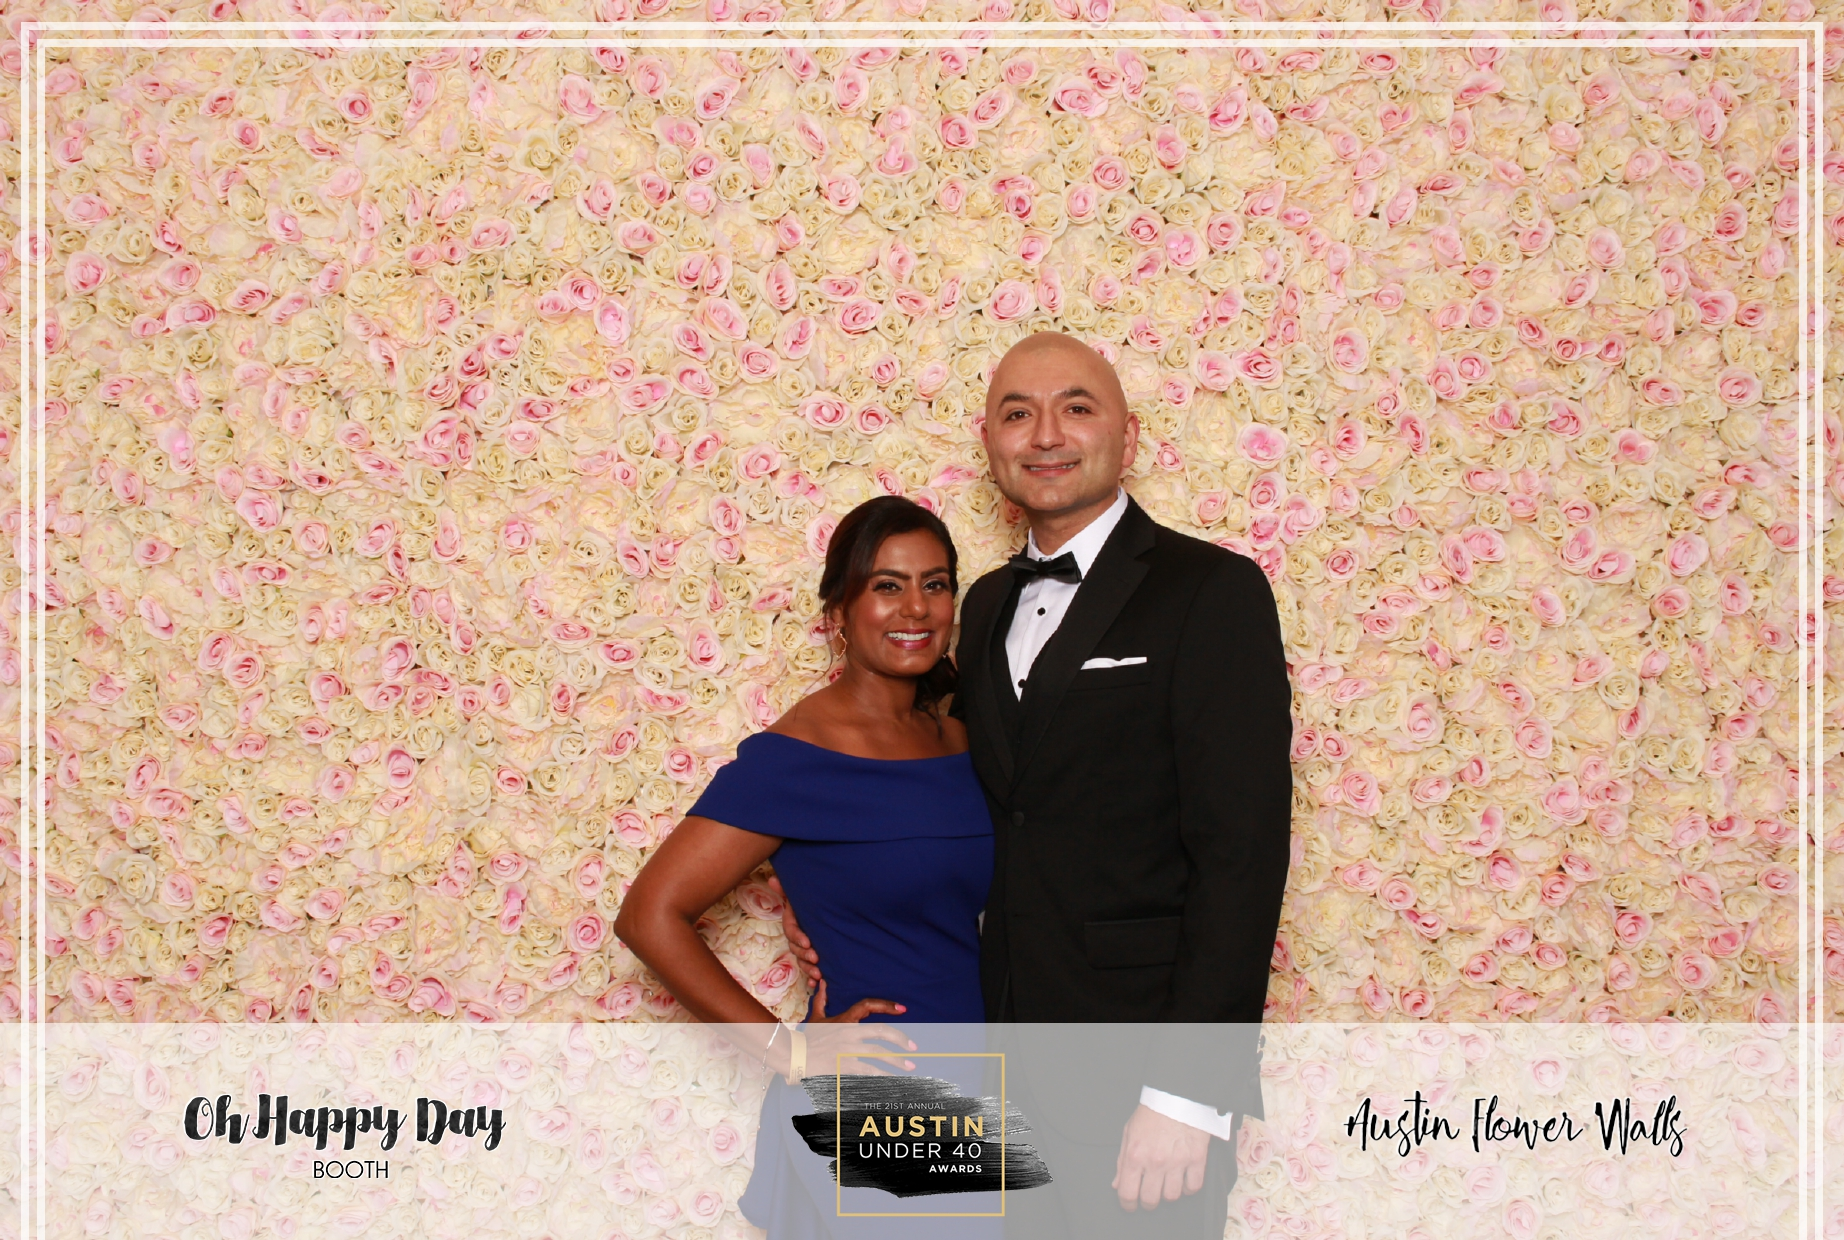 Oh Happy Day Booth - Austin Under 40-147.jpg